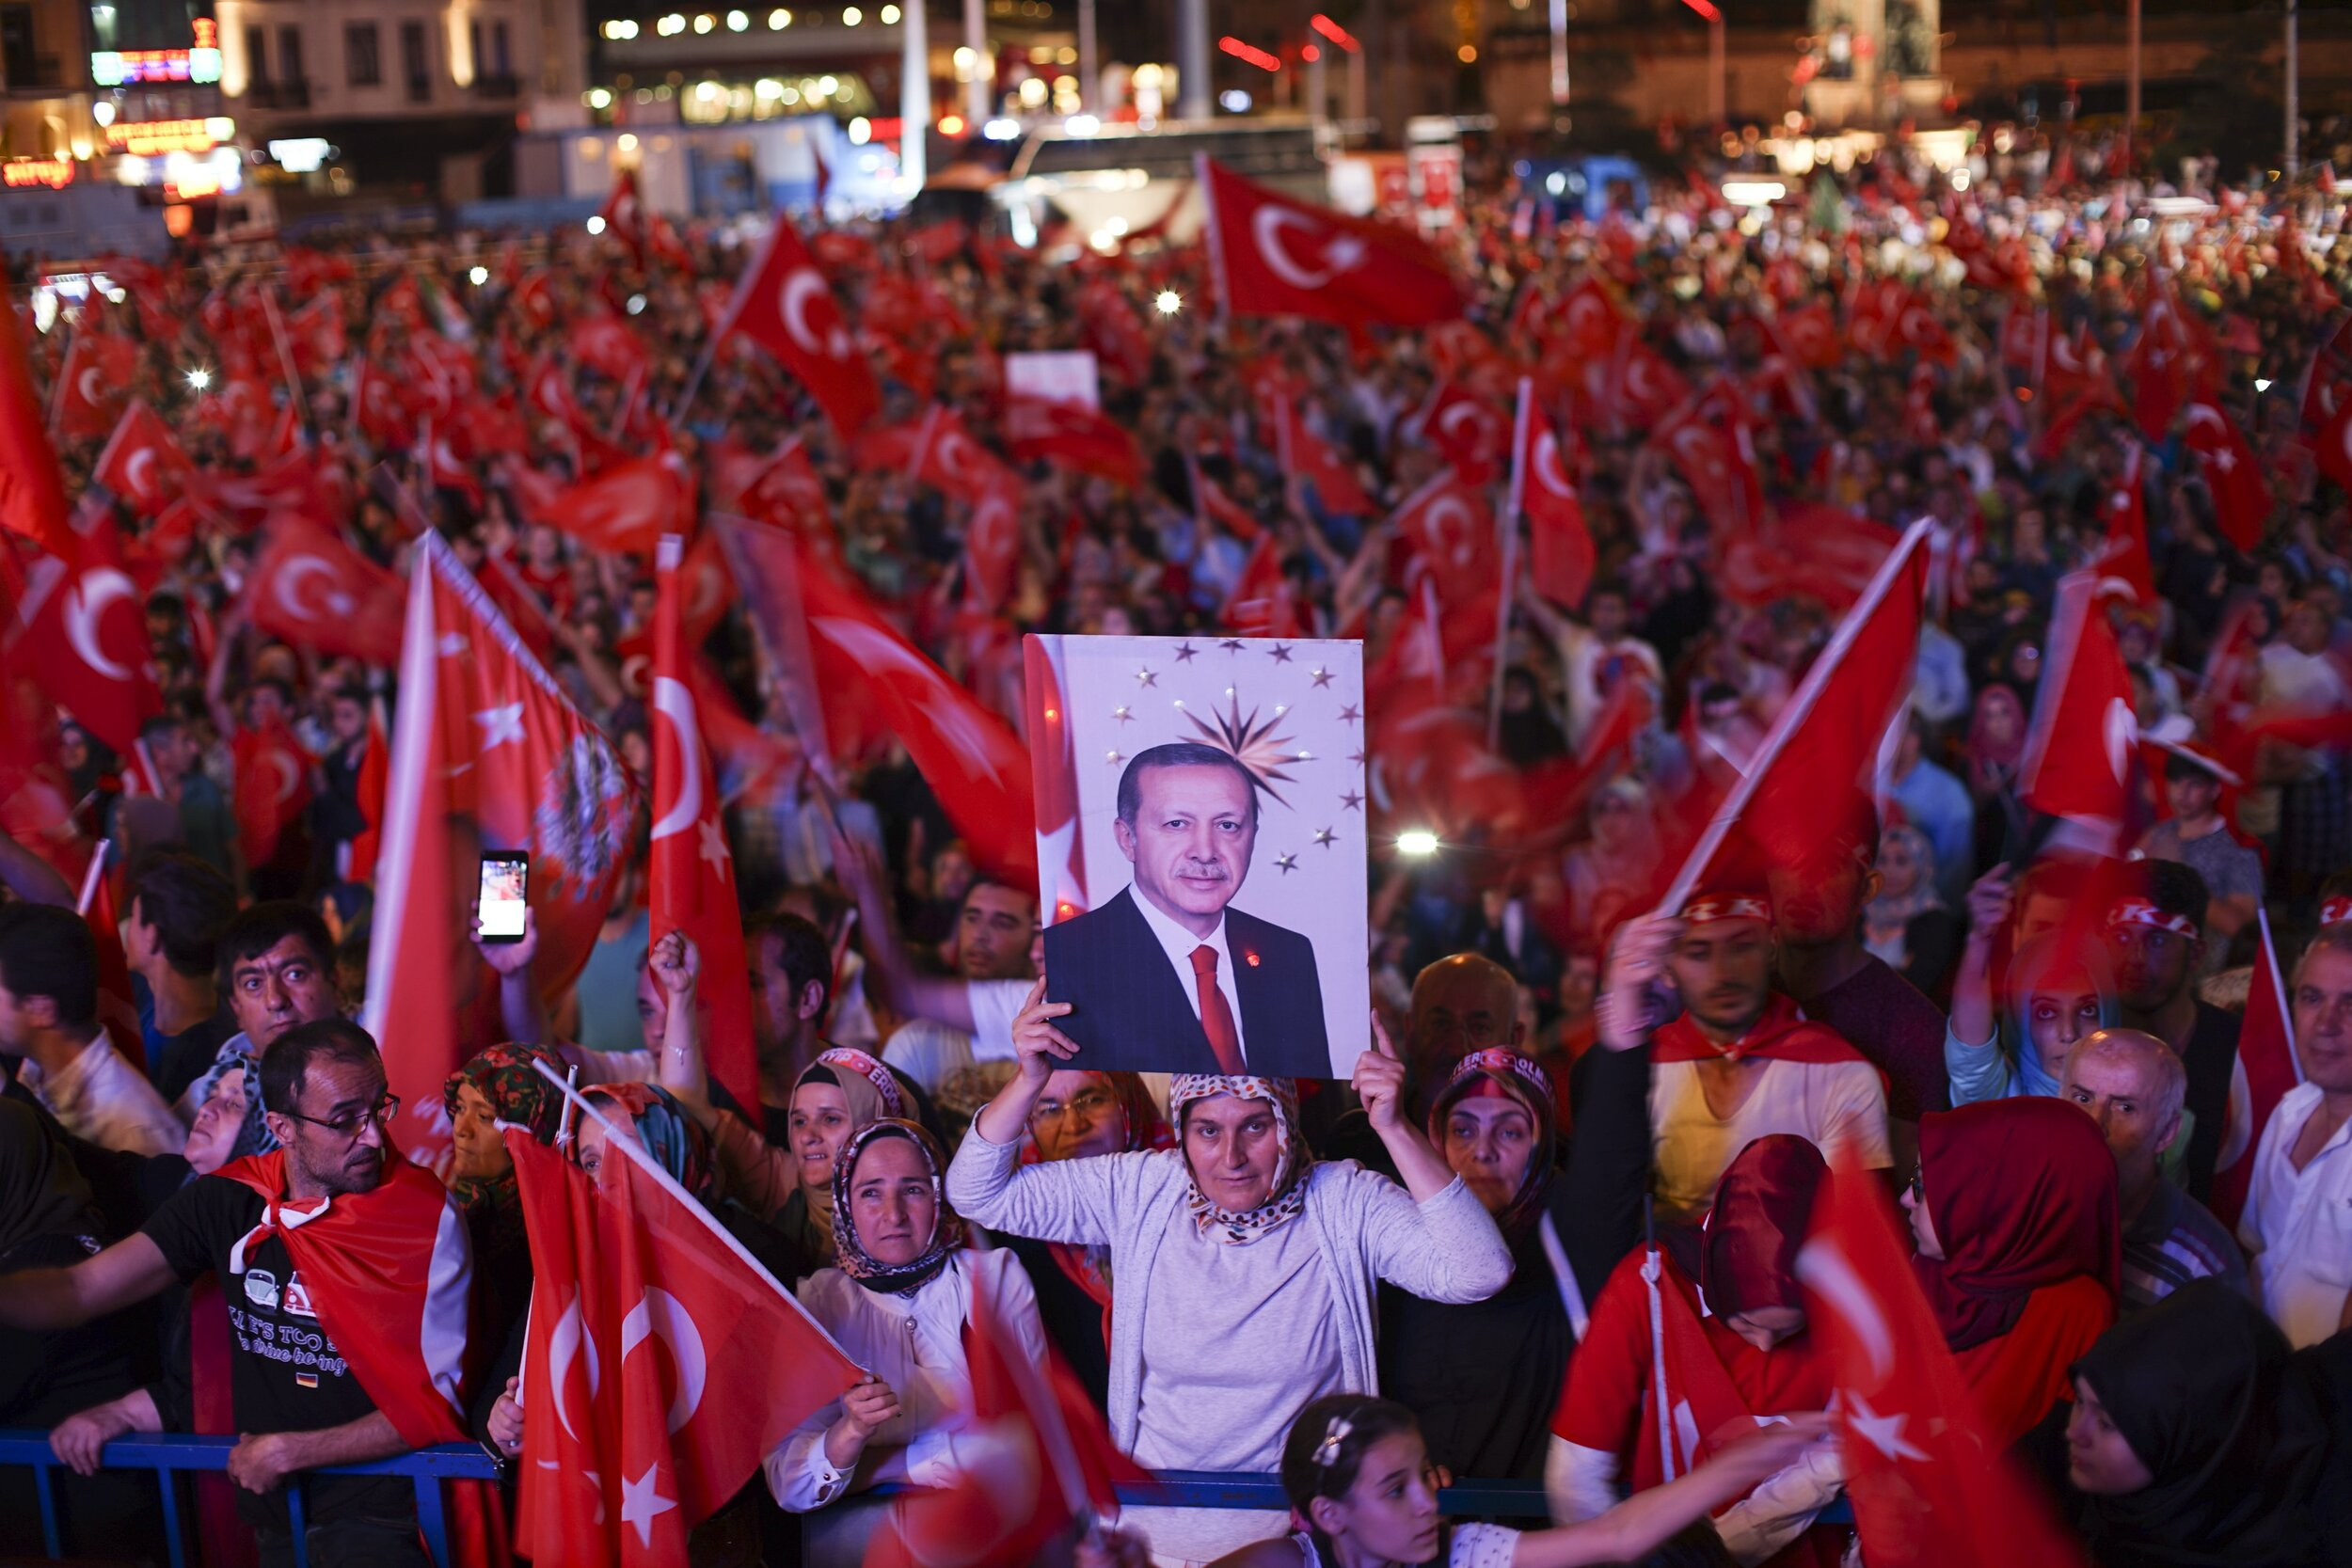 After_coup_nightly_demonstartion_of_president_Erdogan_supporters._Istanbul_Turkey_Eastern_Europe_and_Western_Asia._22_July2016.jpg